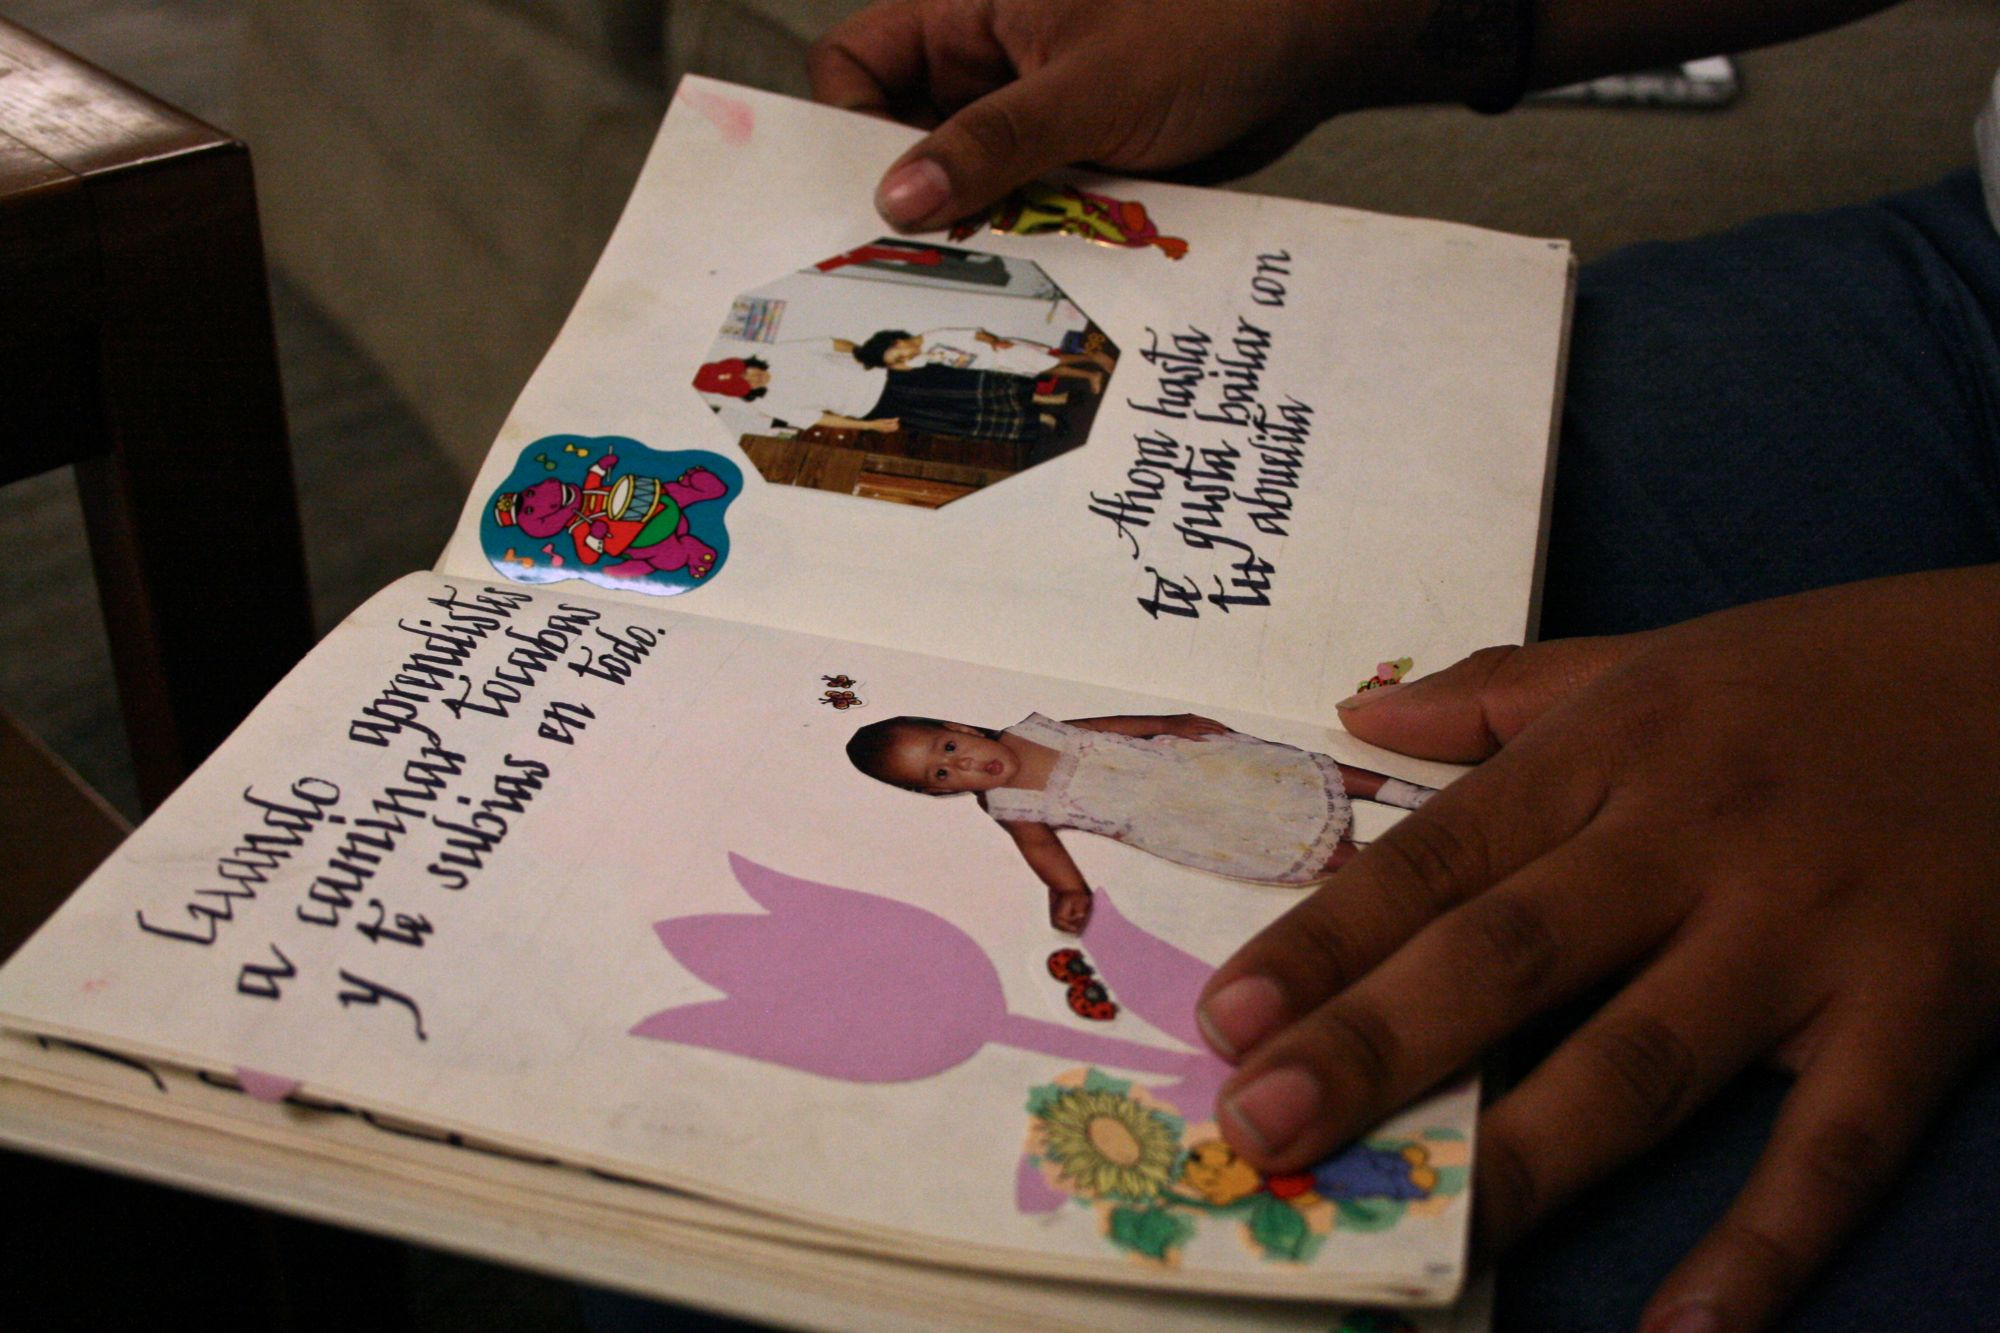 "Reeb Menjivar shows a book her mother handmade for her at Arizona State University in Tempe, Ariz. on April 15, 2016. """"My mom has always been the one who really taught me a little bit about what I do know about Salvadorean culture,"" she said. ""Because my grandpa's always been like 'you're American!' Because I guess he kind of didn't want us to miss out on anything because of discrimination that happens ... But I was telling him recently, 'I'm brown!' I look like this and I can't hide and I'm not gonna try to be something I'm not. Yes, I was born here and I recognize that, but I still hold strong to being proud of being Salvadorean. I think he was doing it out of love and protection, but it was wrong of him to do. I'm not mad at him, but I've gotten into conversations with him. We can't disregard our own culture. It shapes who were are."""